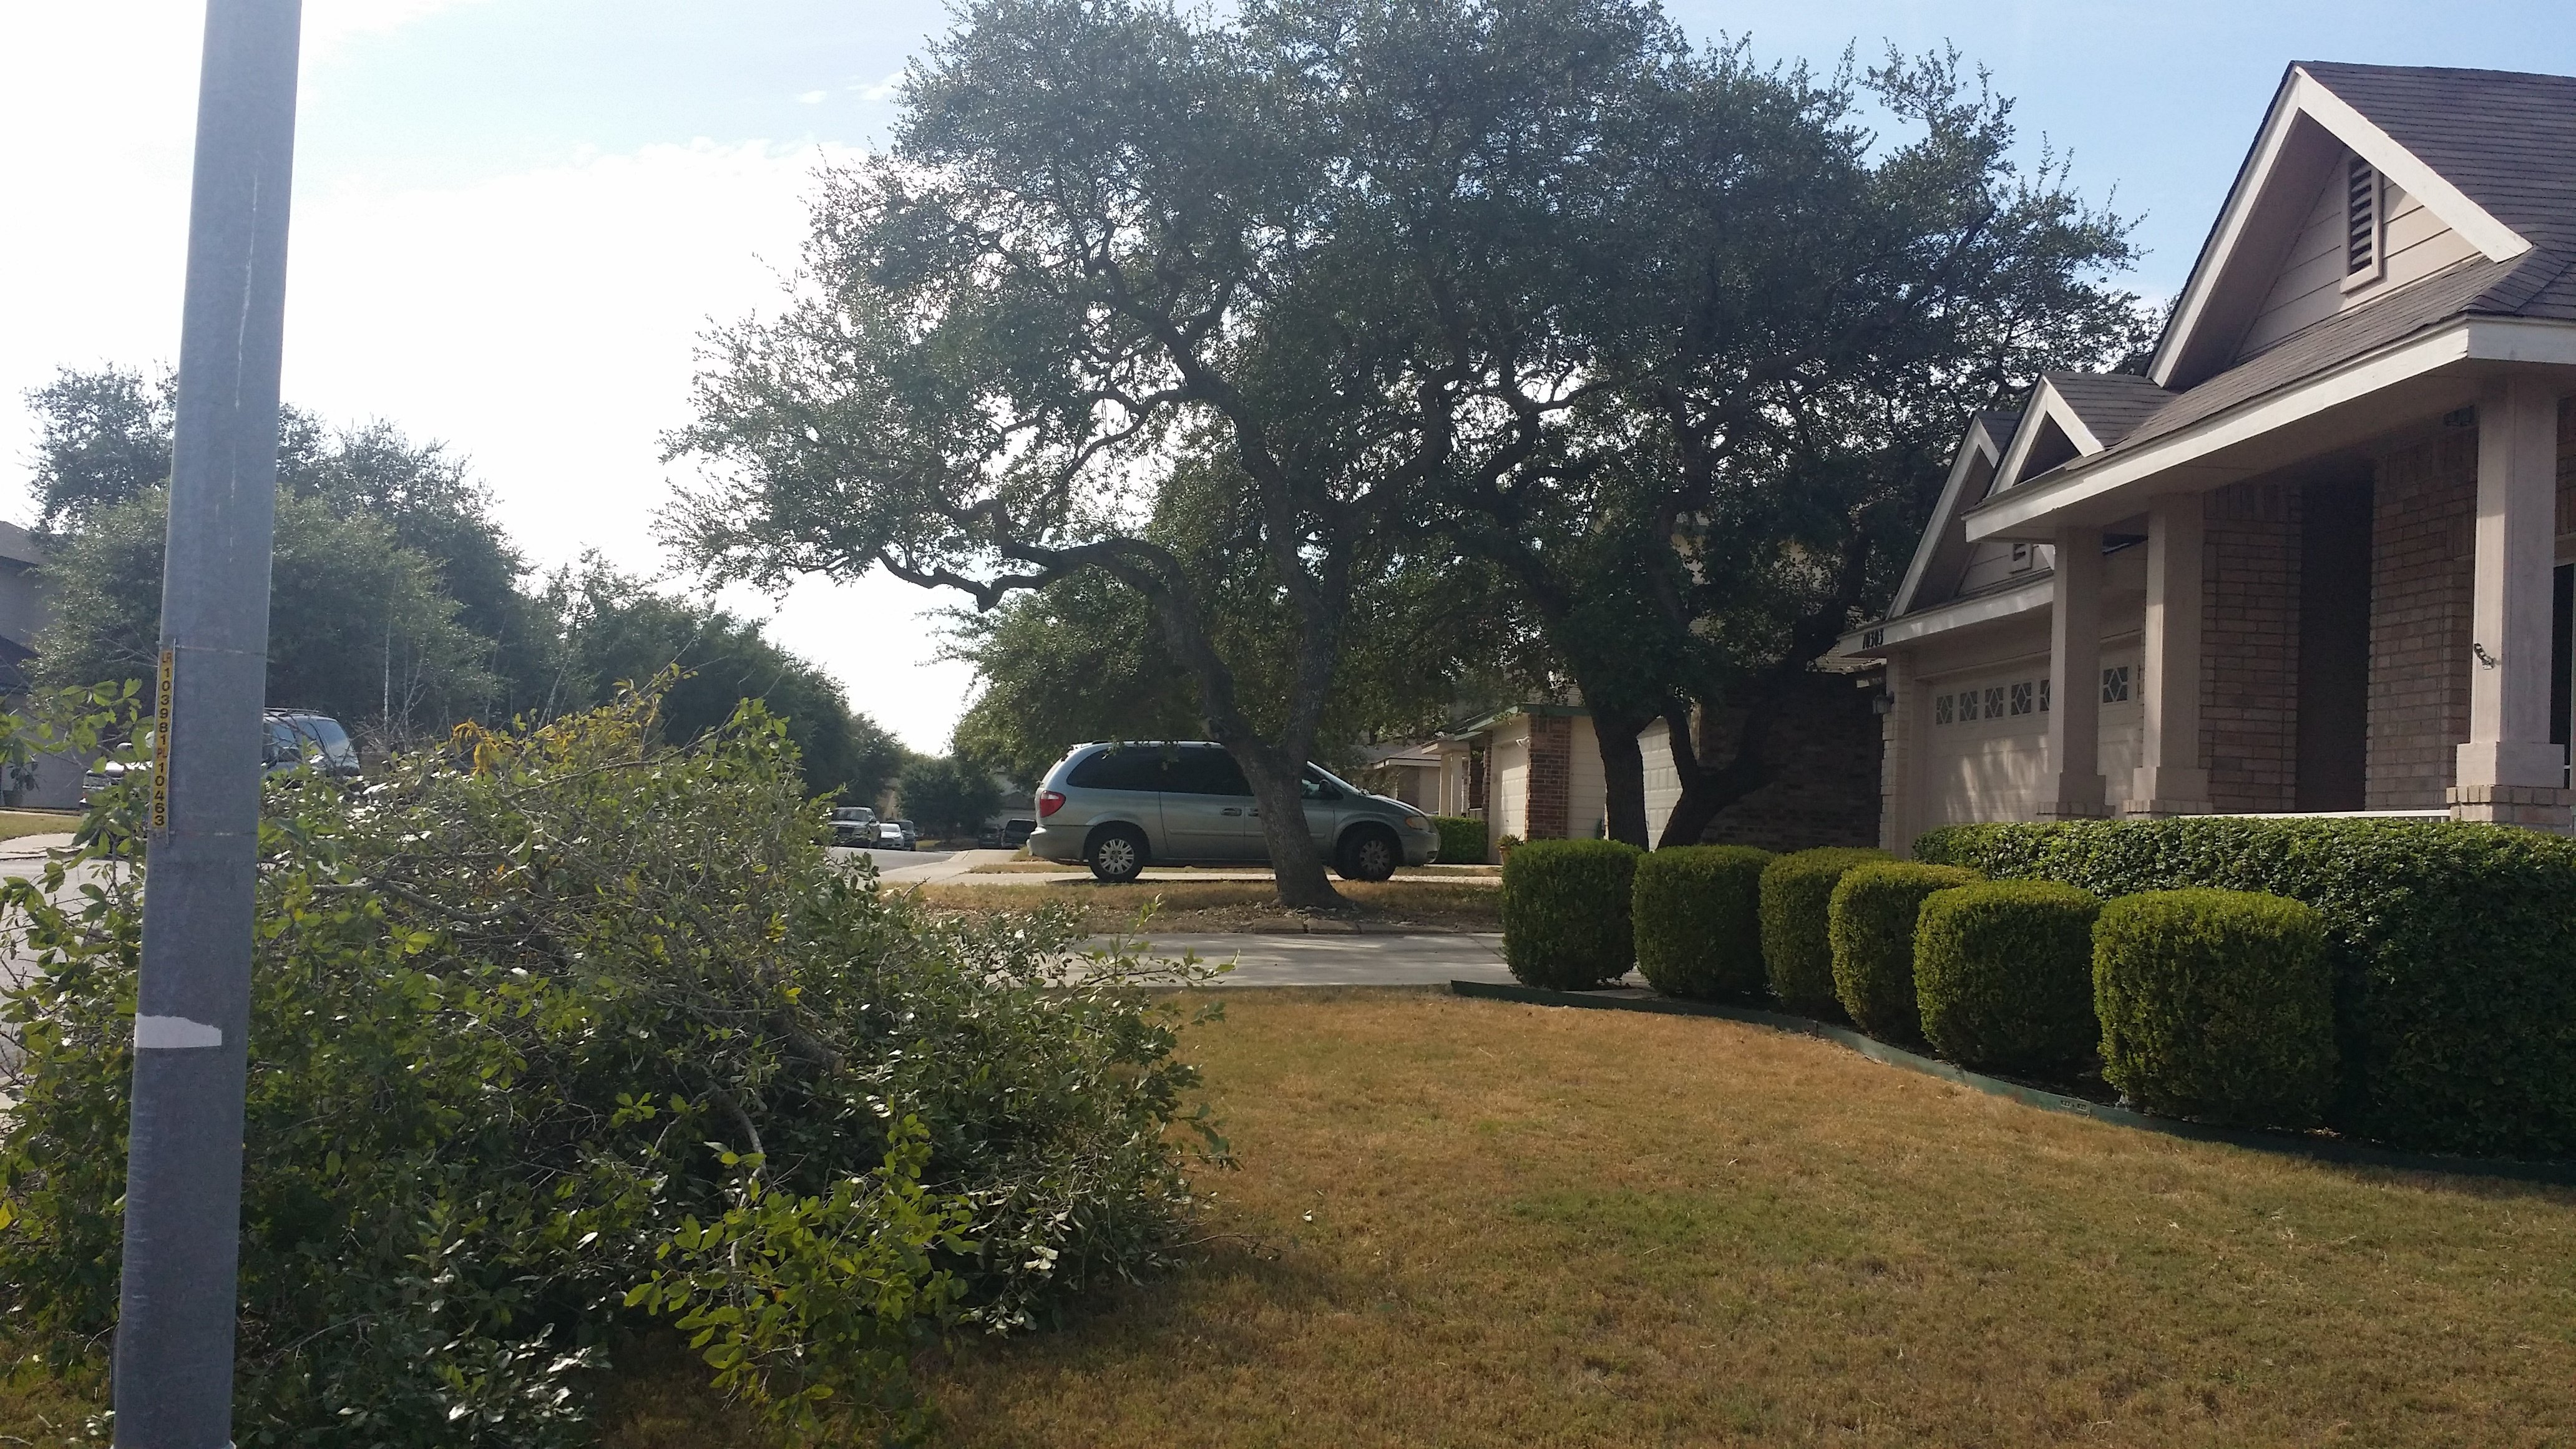 Tree Removal in San Antonio, TX